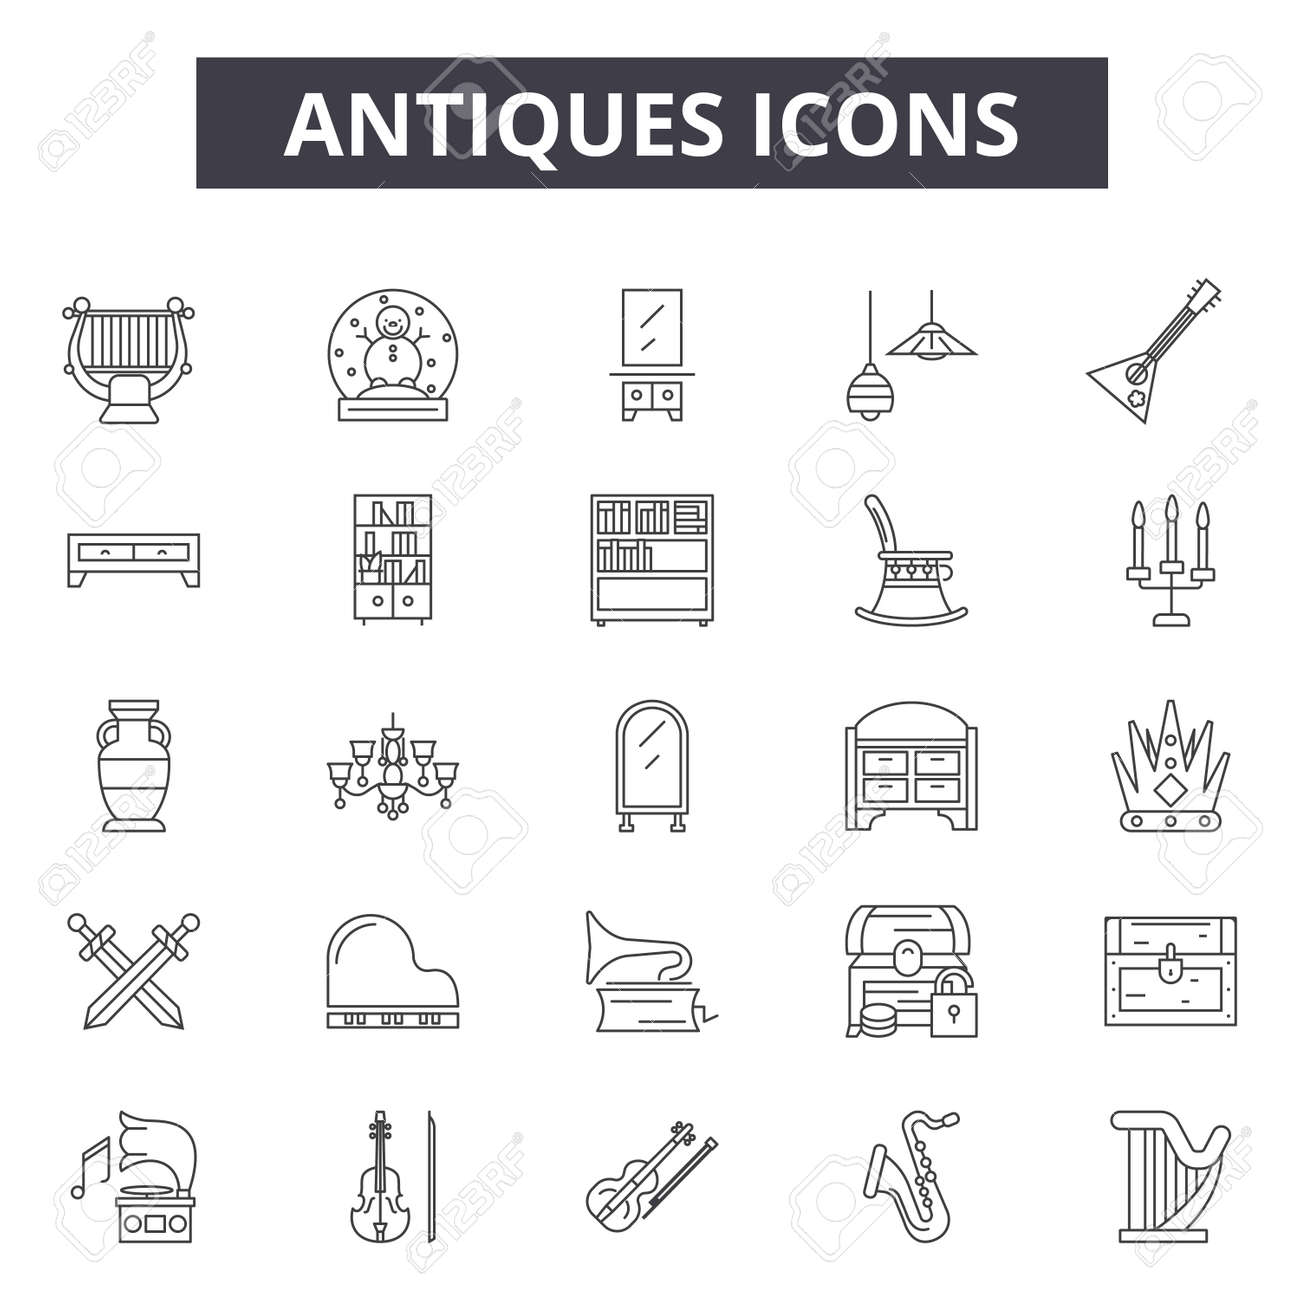 antiques line icons signs